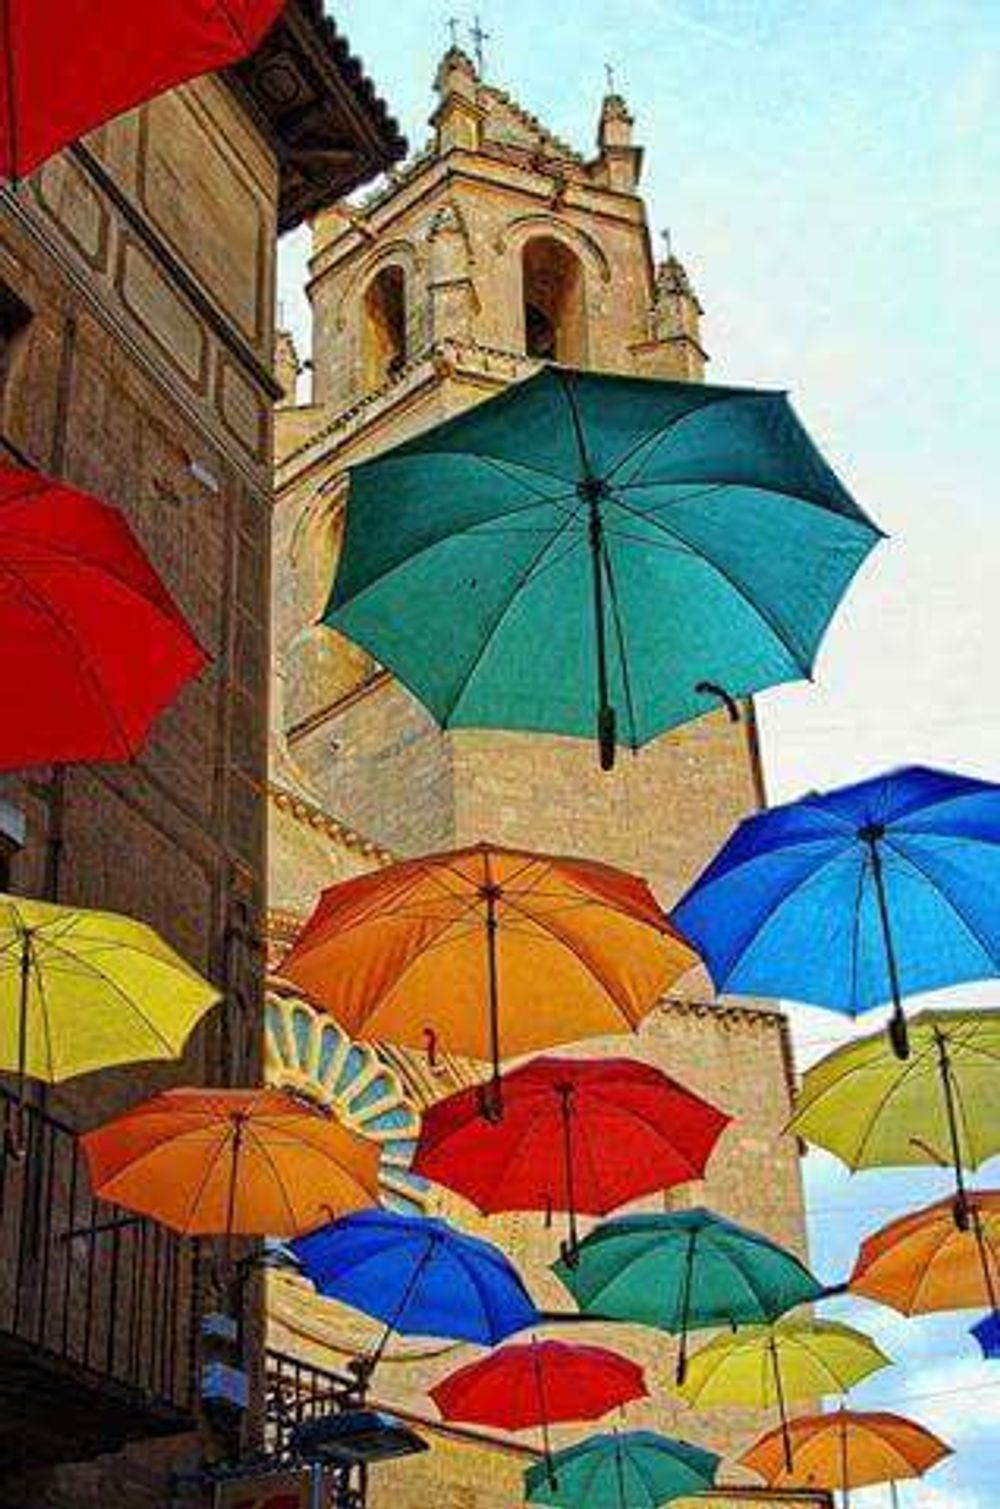 title: Umbrella street in Agueda Portugal